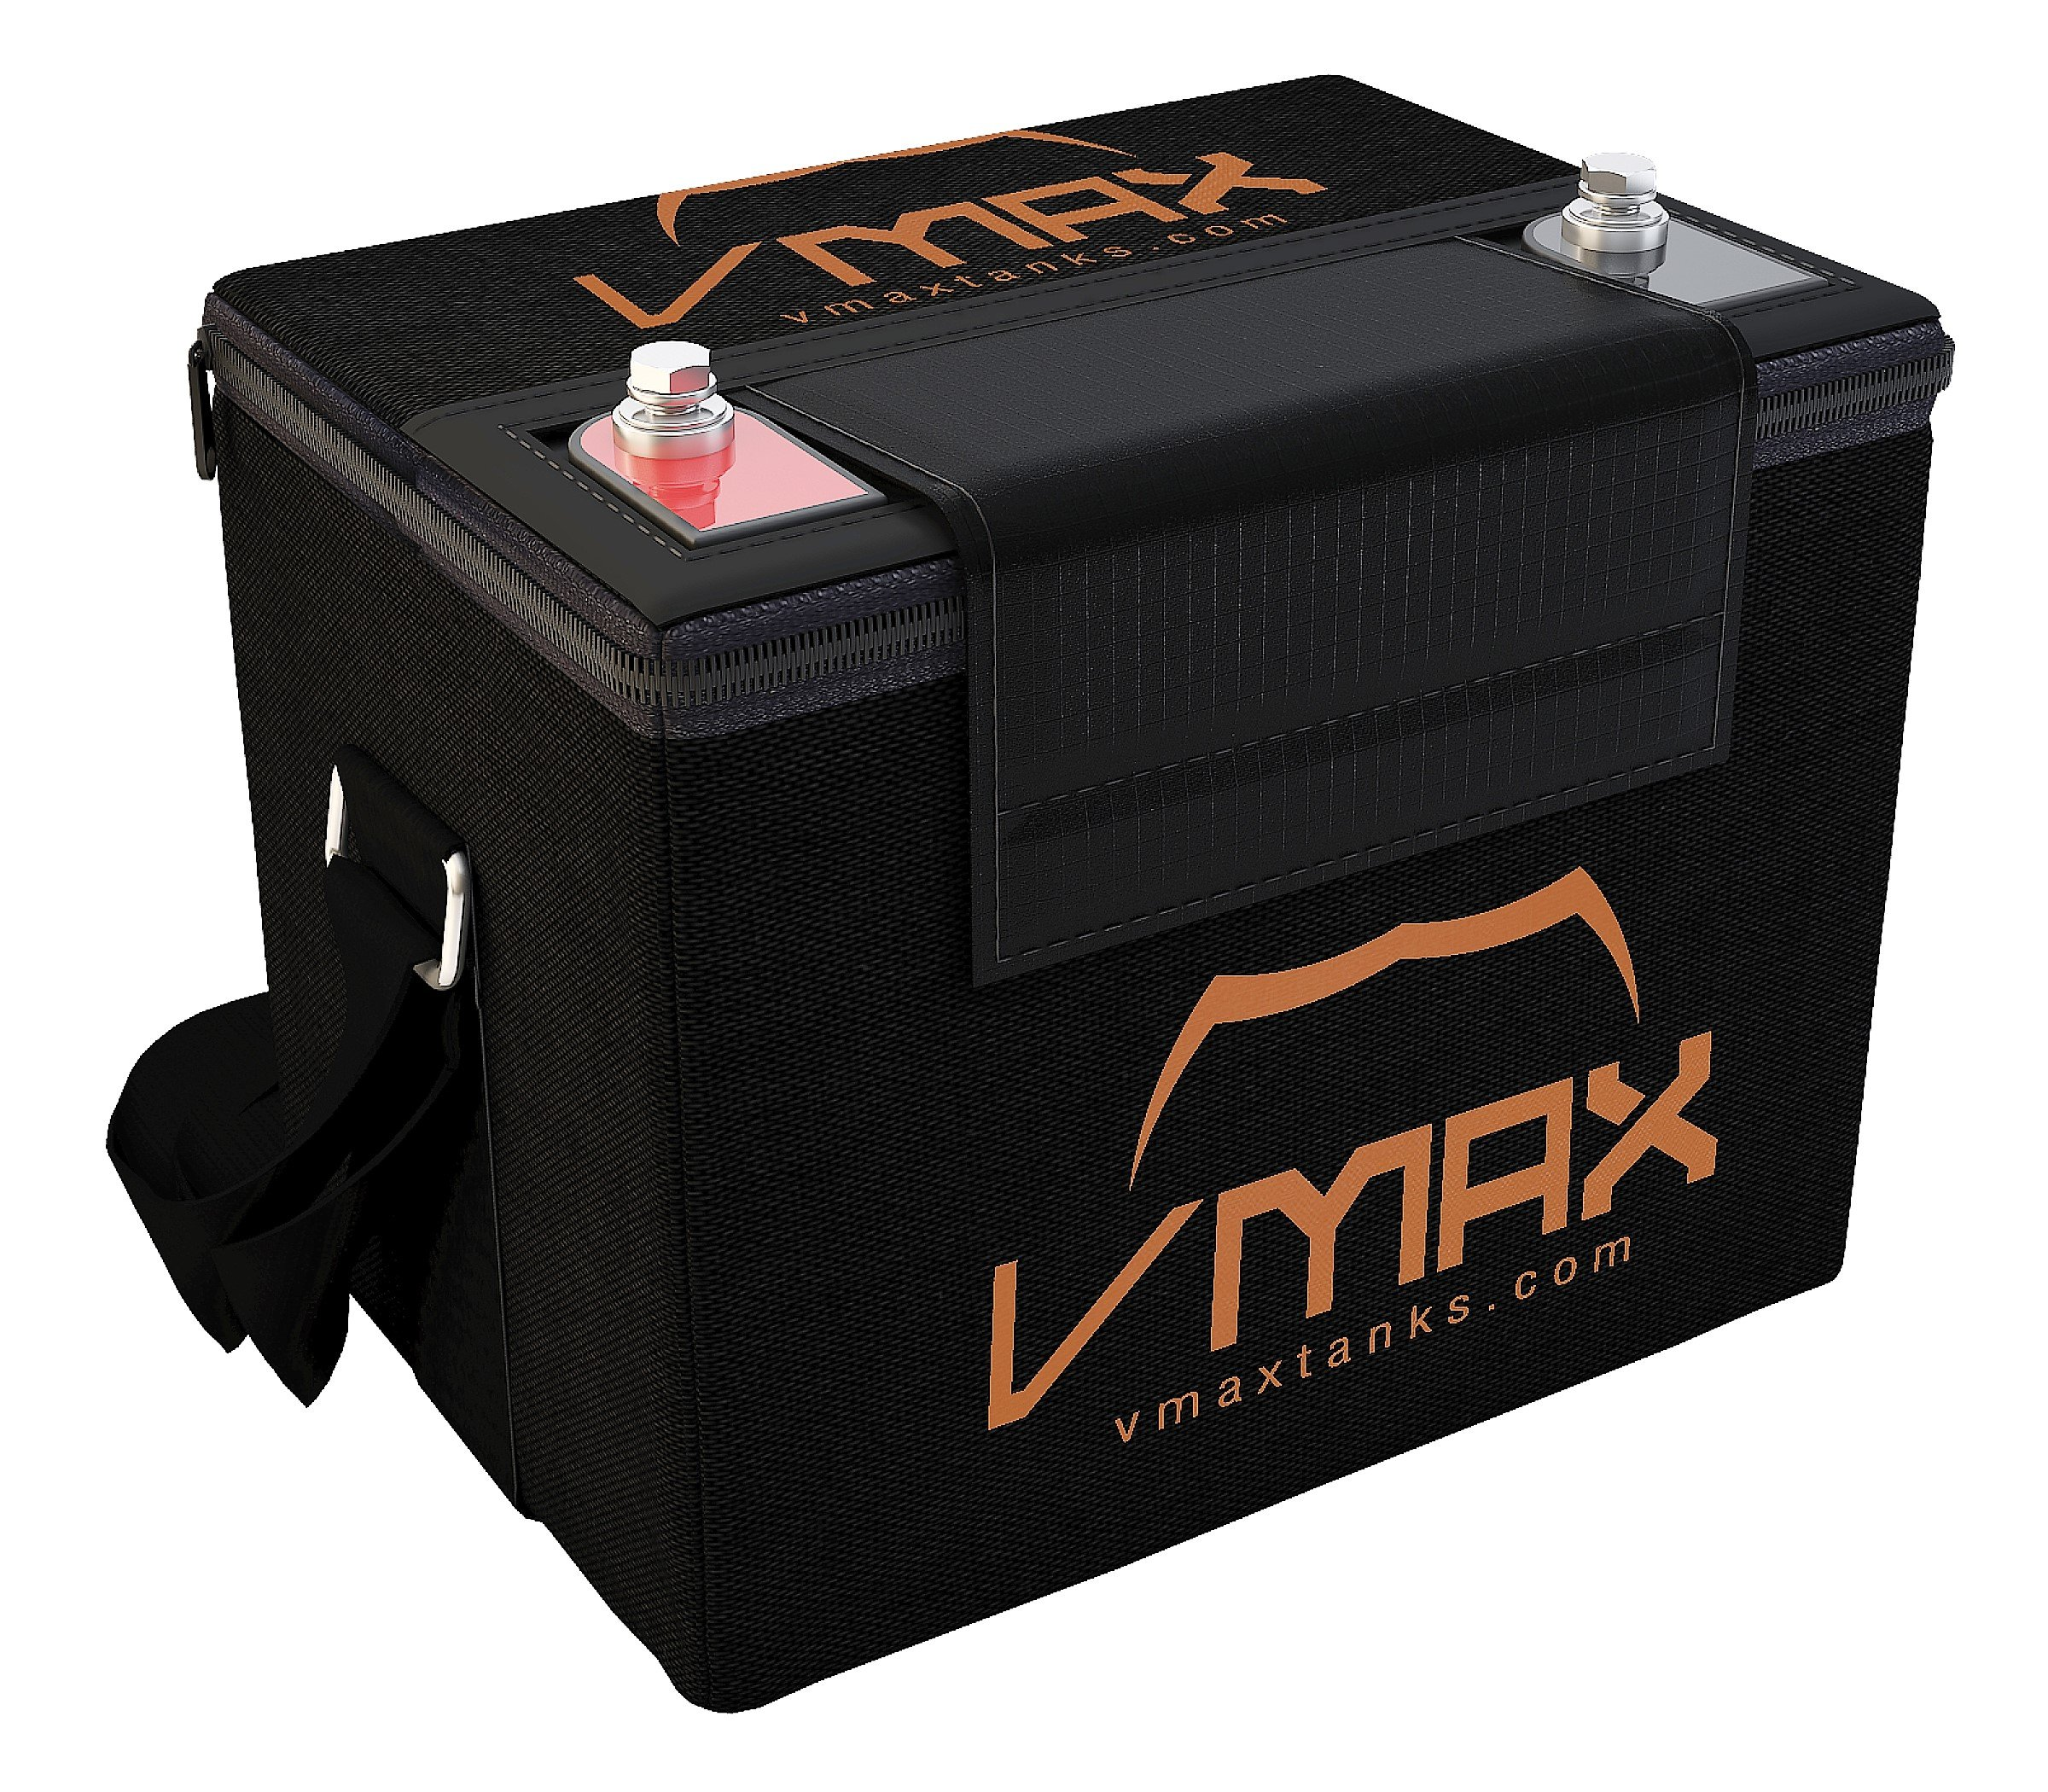 VMAX VPG12C-50Li Lithium Ion Power Generator 50AH 12V U1 Deep Cycle Battery for Minn Kota Trolling Motor with Li_Ion Charger by VMAXTANKS (Image #3)